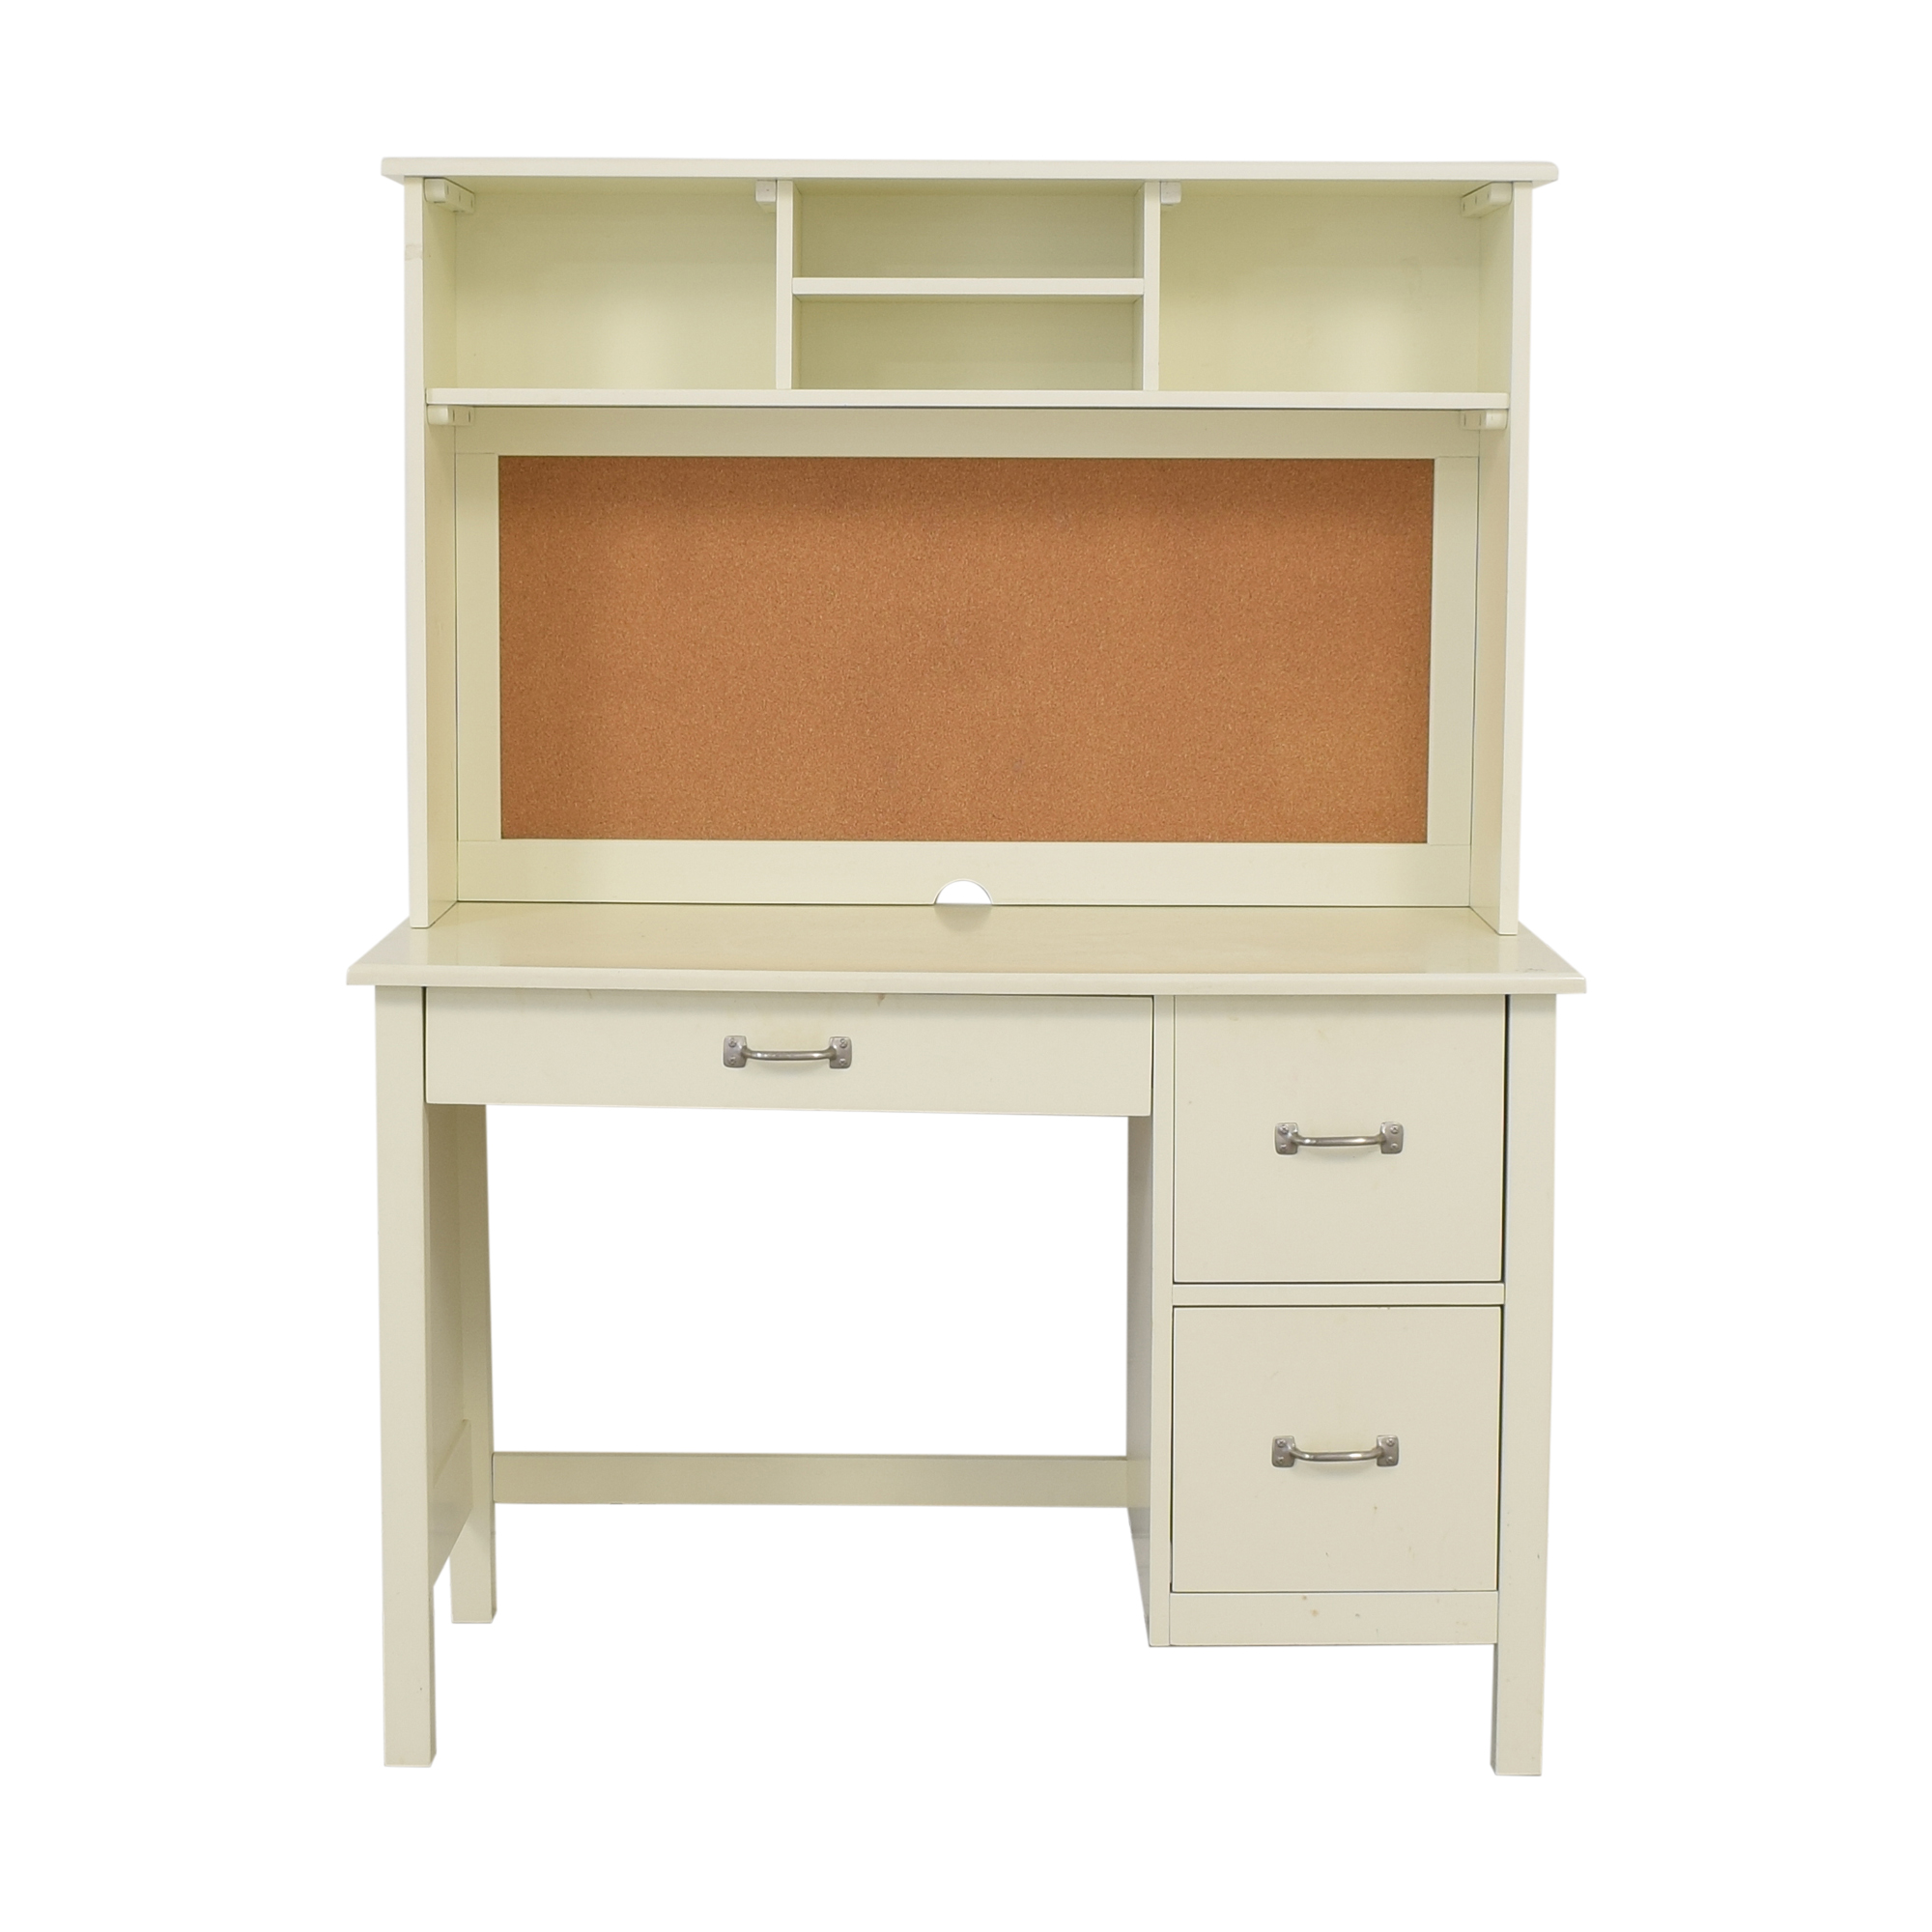 Pottery Barn Kids Pottery Barn Kids Kendall Desk with Hutch for sale